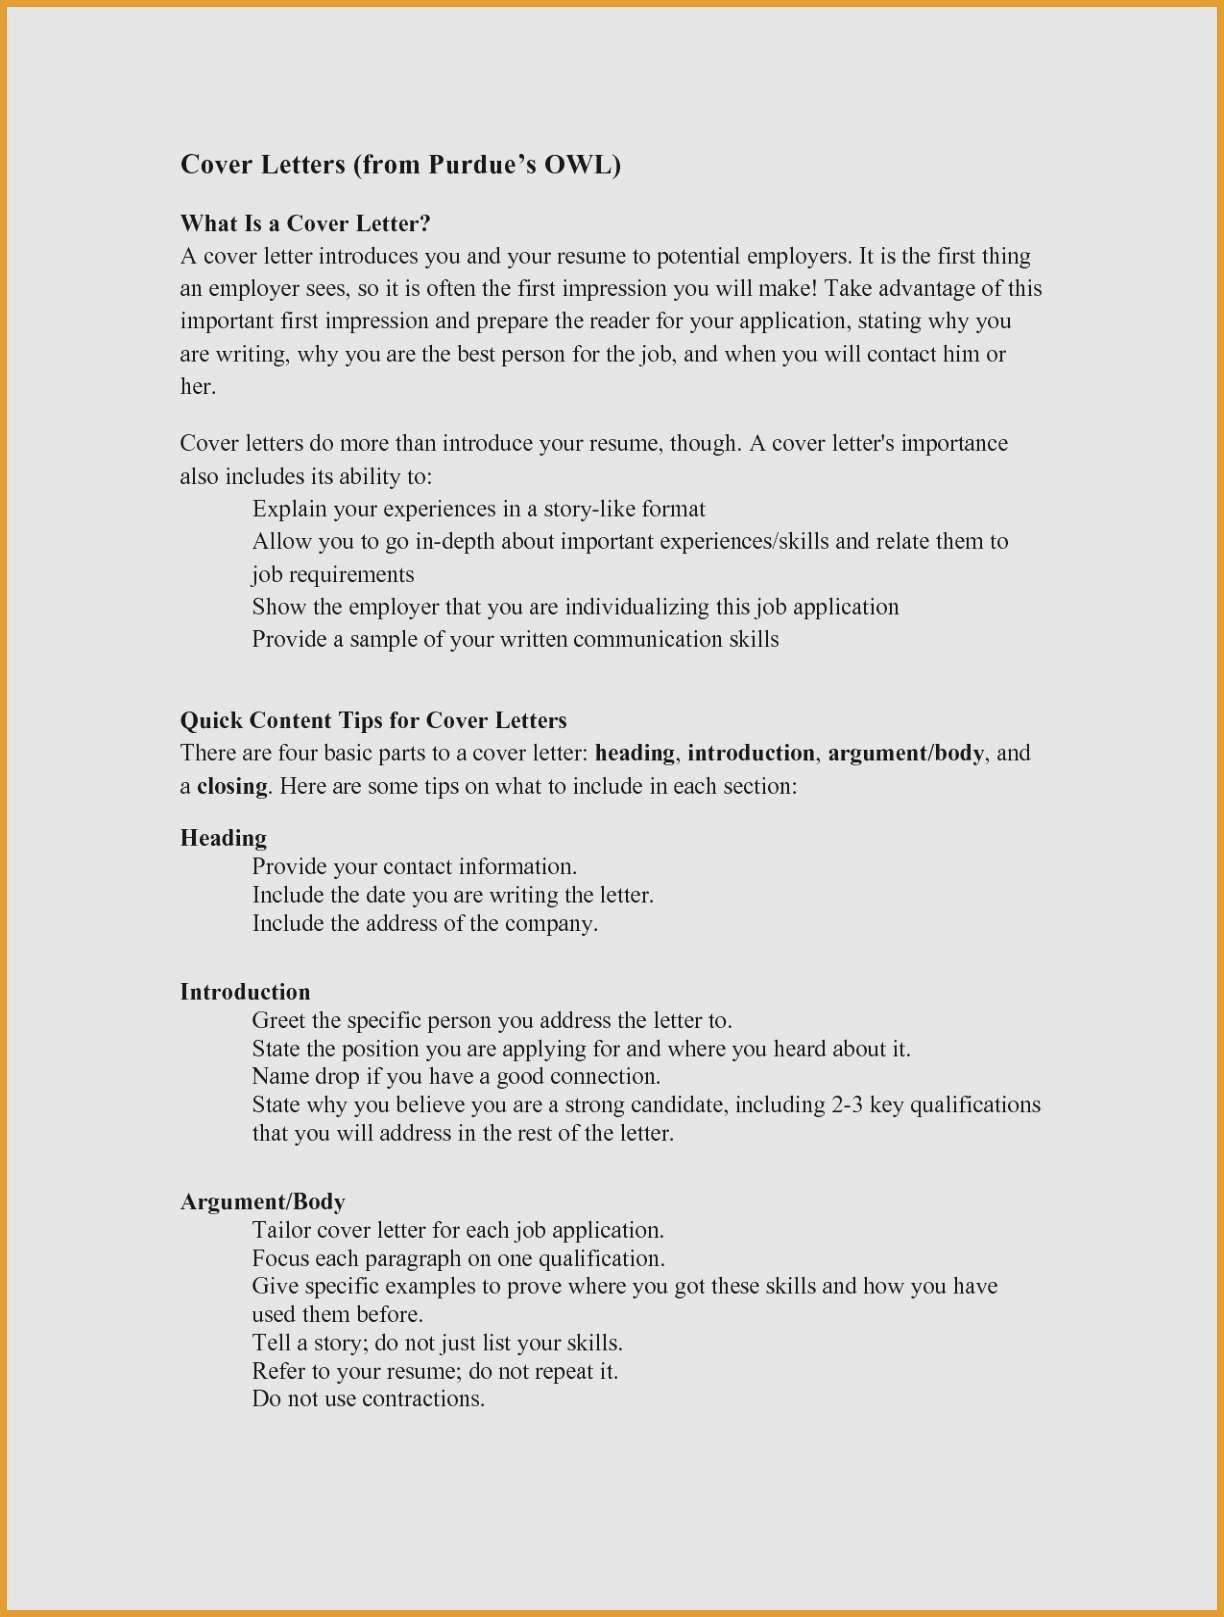 Resume Template Purdue - Purdue Cover Letter Lovely Purdue Owl Resume 15 Inspirational S